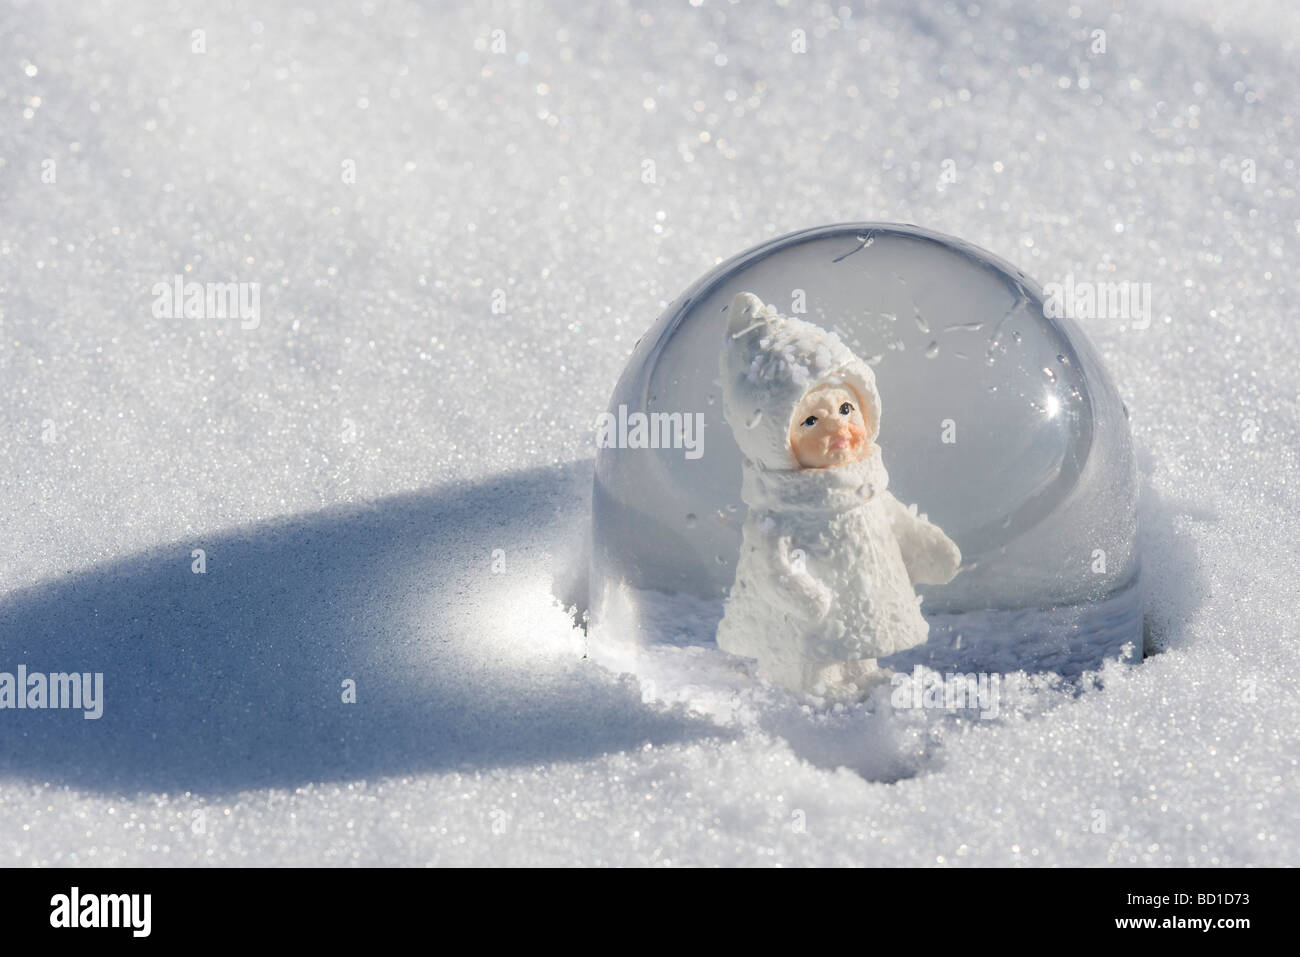 Snow globe in snow, figurine of little girl wearing winter coat and hat looking out Stock Photo